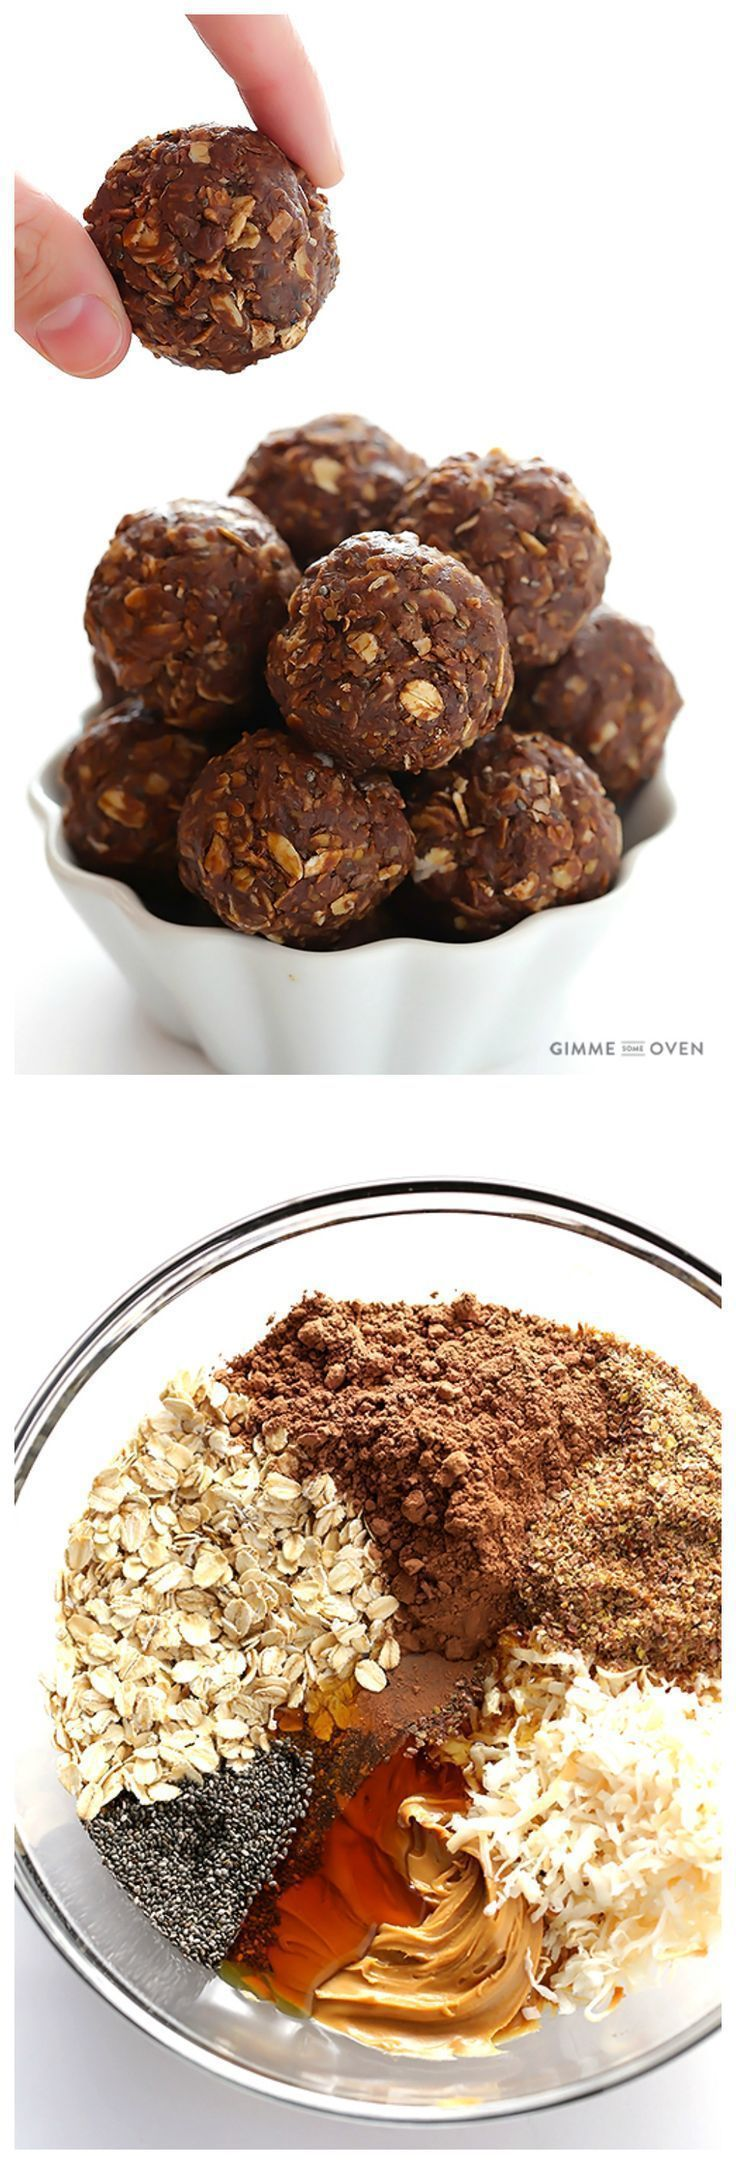 Energy Bites (Naturally Sweetened) Chocolate Peanut Butter No-Bake Energy Bites -- full of protein, naturally-sweetened, and perfect for breakfast, snacking, or dessert!Chocolate Peanut Butter No-Bake Energy Bites -- full of protein, naturally-sweetened, and perfect for breakfast, snacking, or dessert!N...